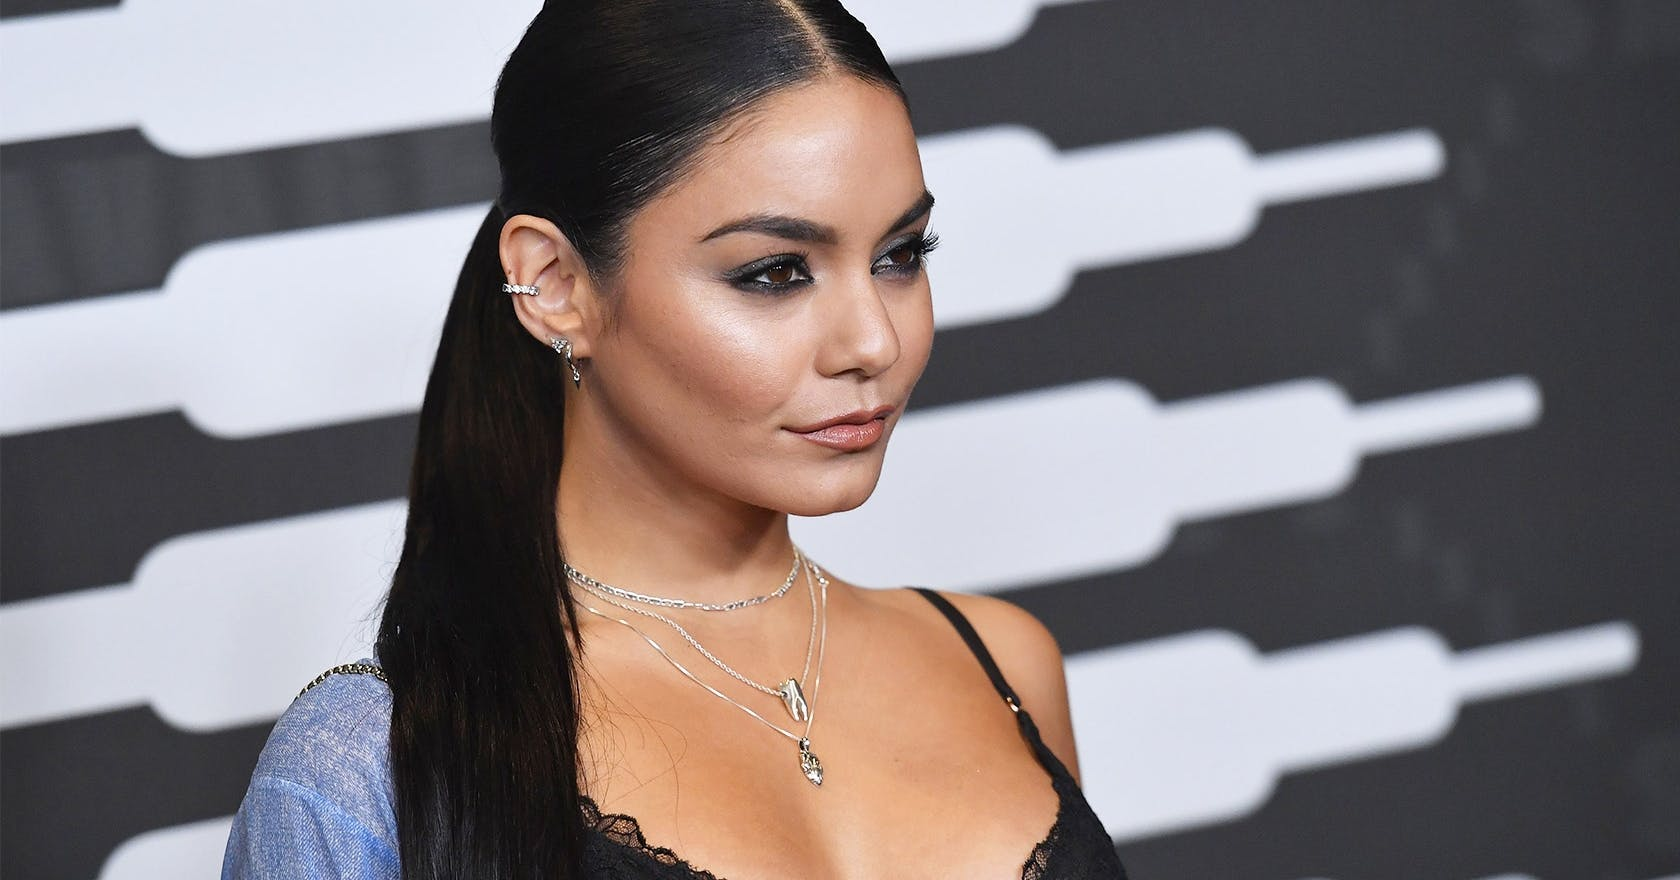 The Best Celebrity Bob Haircut Styles Including Vanessa Hudgens